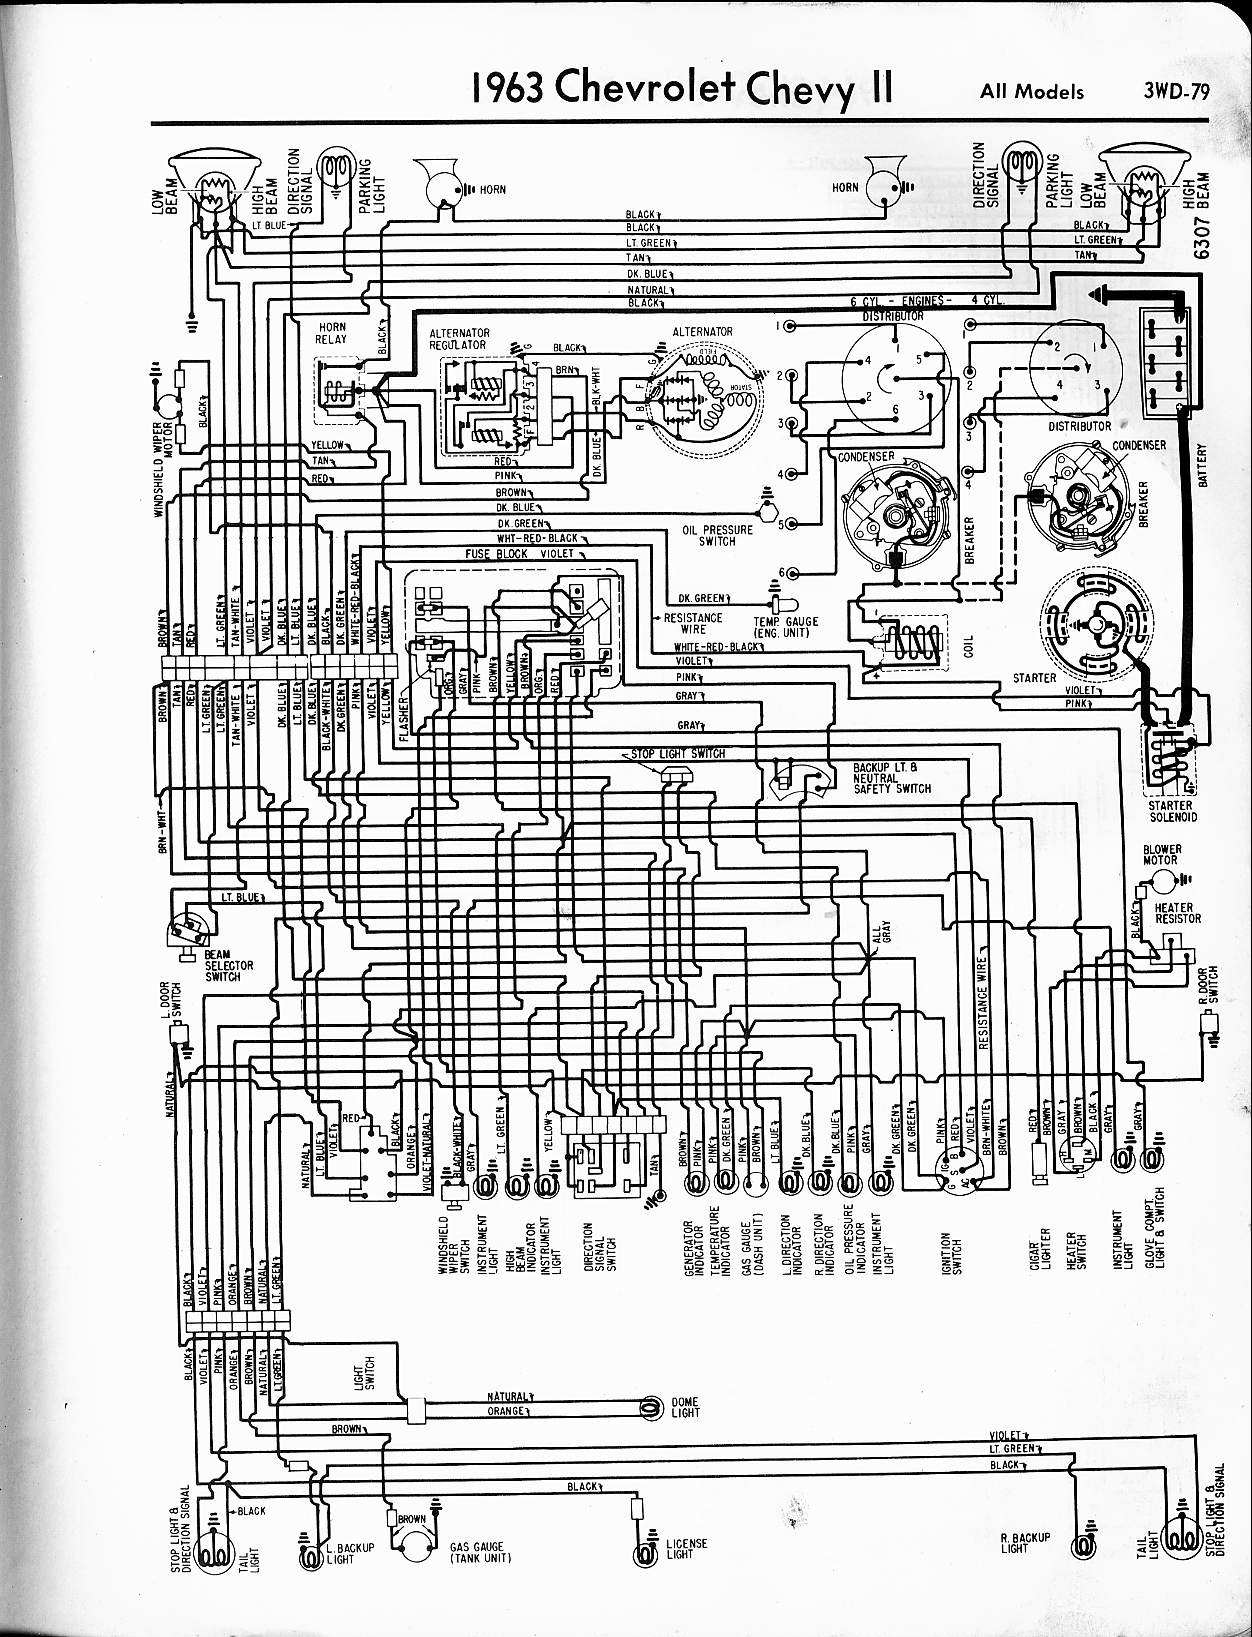 MWireChev63_3WD 079 57 65 chevy wiring diagrams 1963 chevrolet c10 wiring diagram at cos-gaming.co